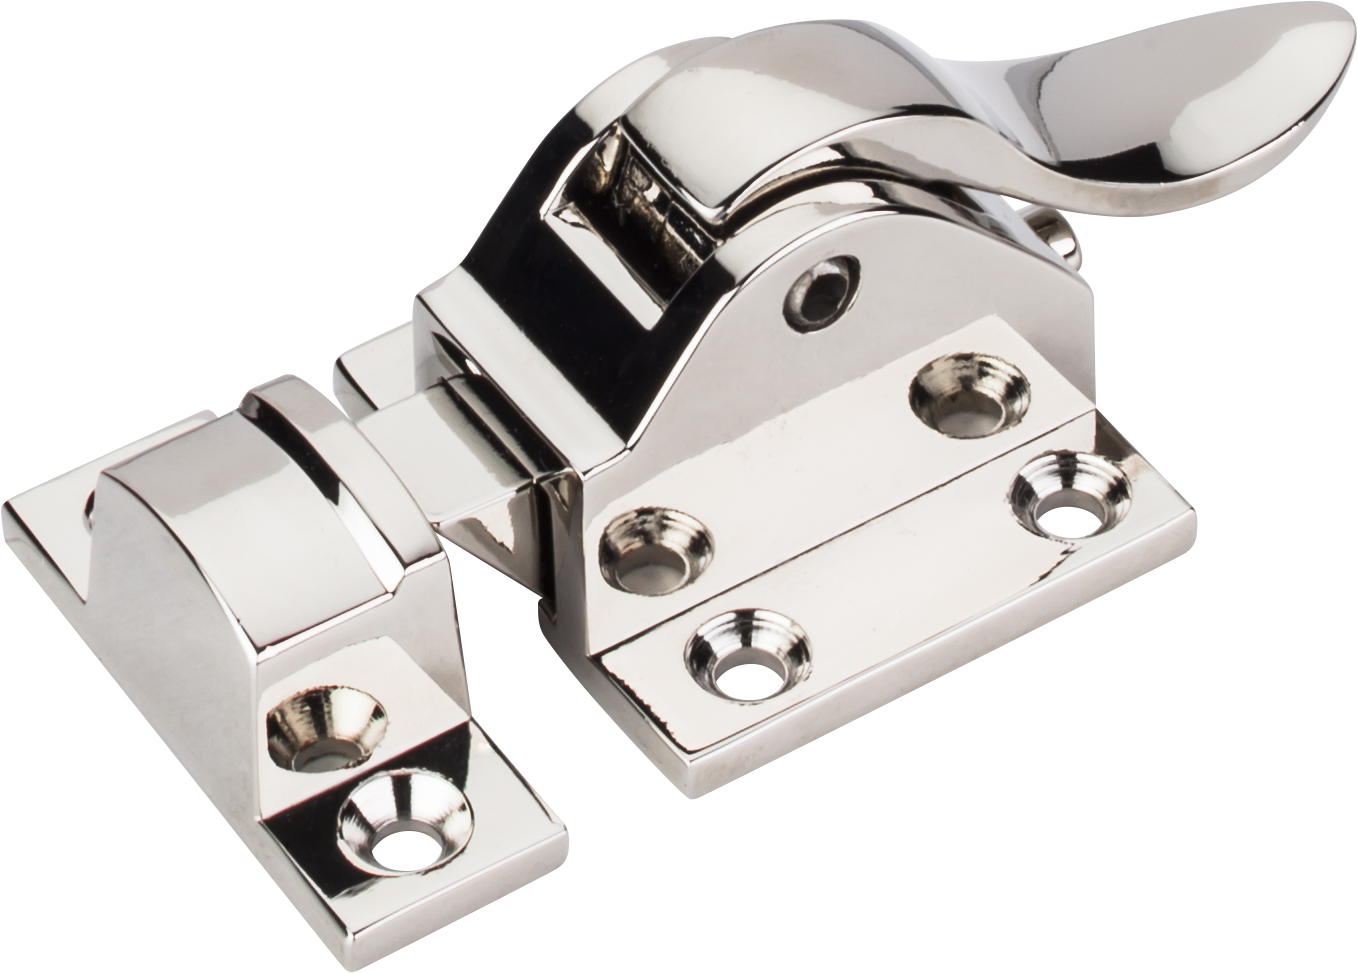 cabinet latches Archives - Top Knobs Top Expressions ...